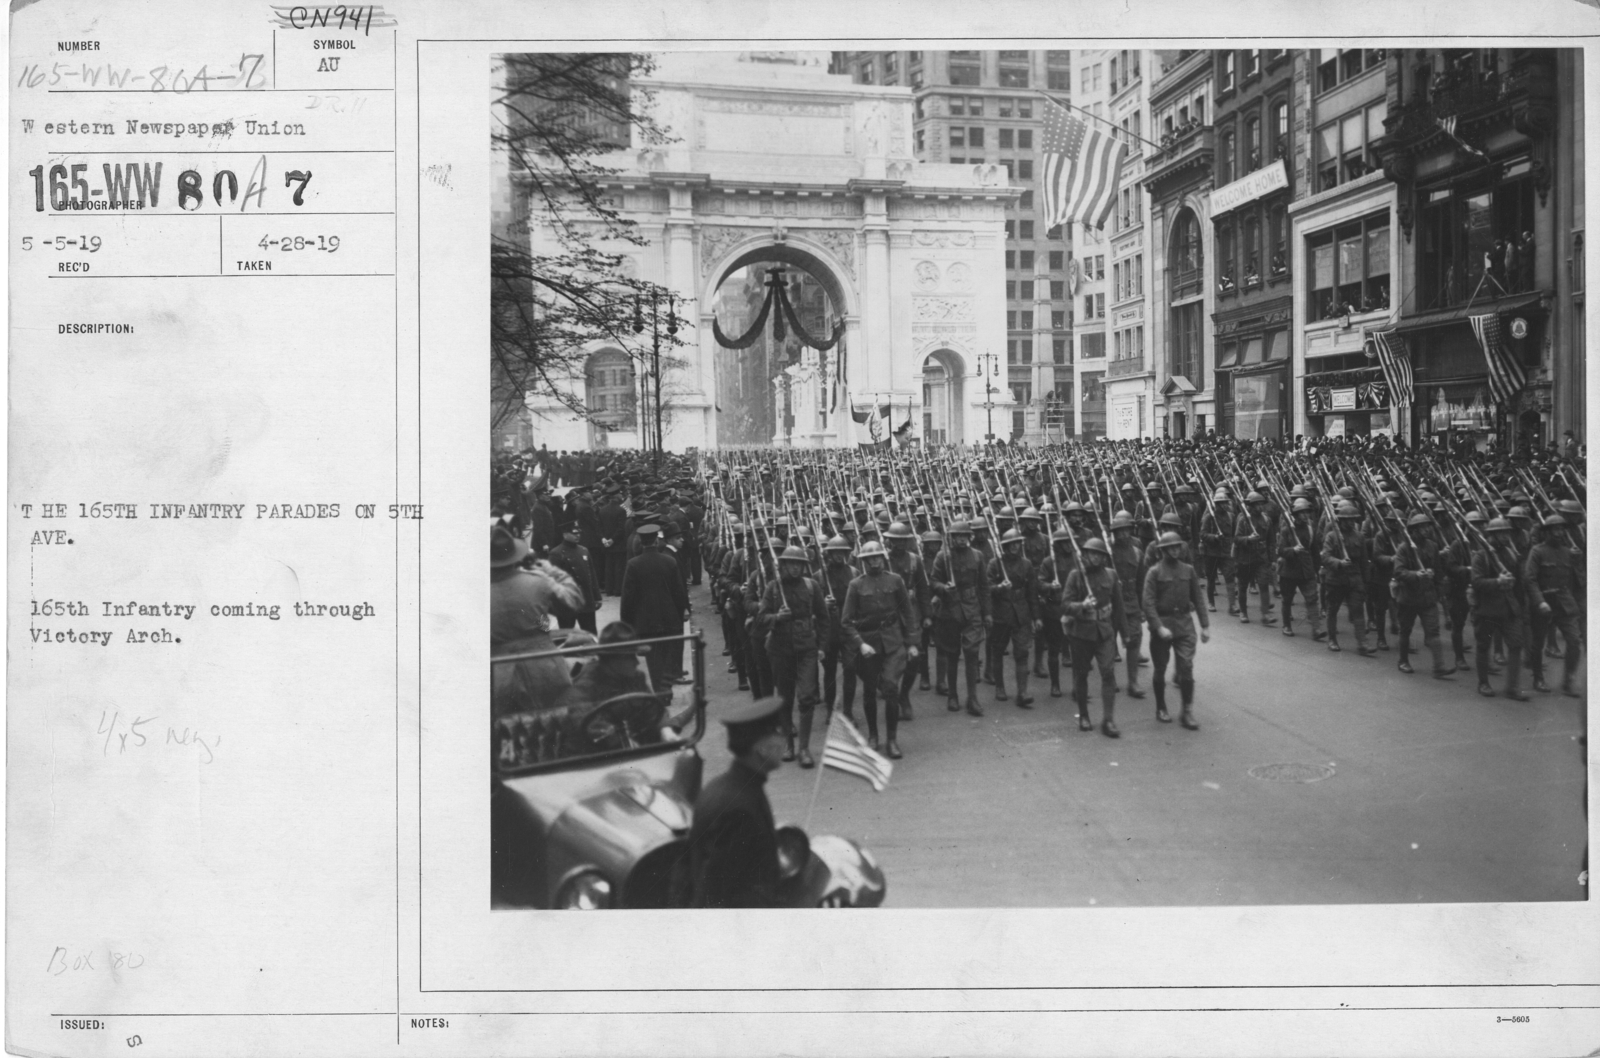 Ceremonies - Demobilization - The 165th Infantry Parades on 5th Ave. 165th Infantry coming through Victory Arch